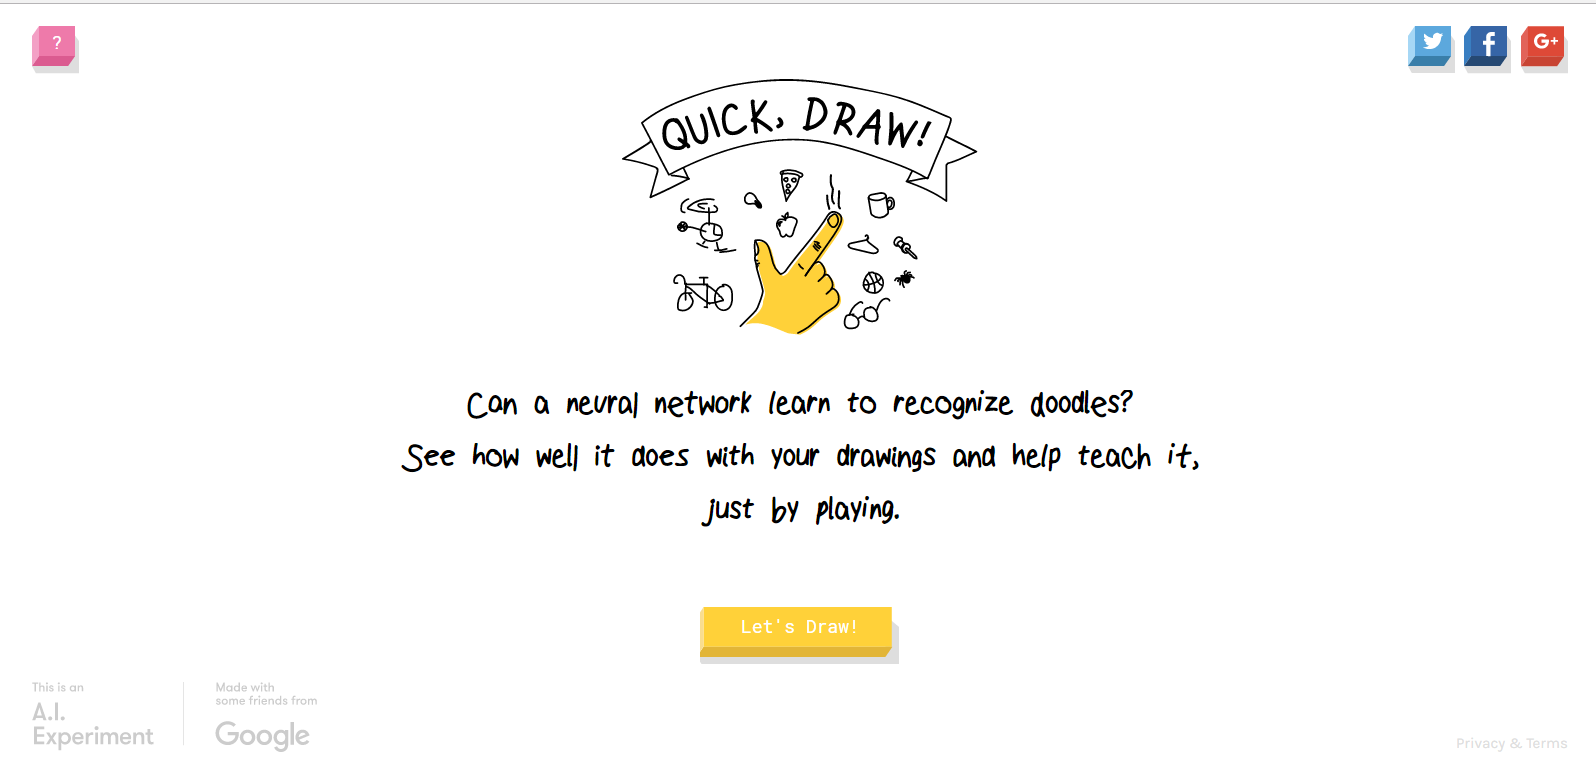 Good at Pictionary? Try Quick, Draw!, from Google! | Techbytes | 1596 x 774 png 61kB